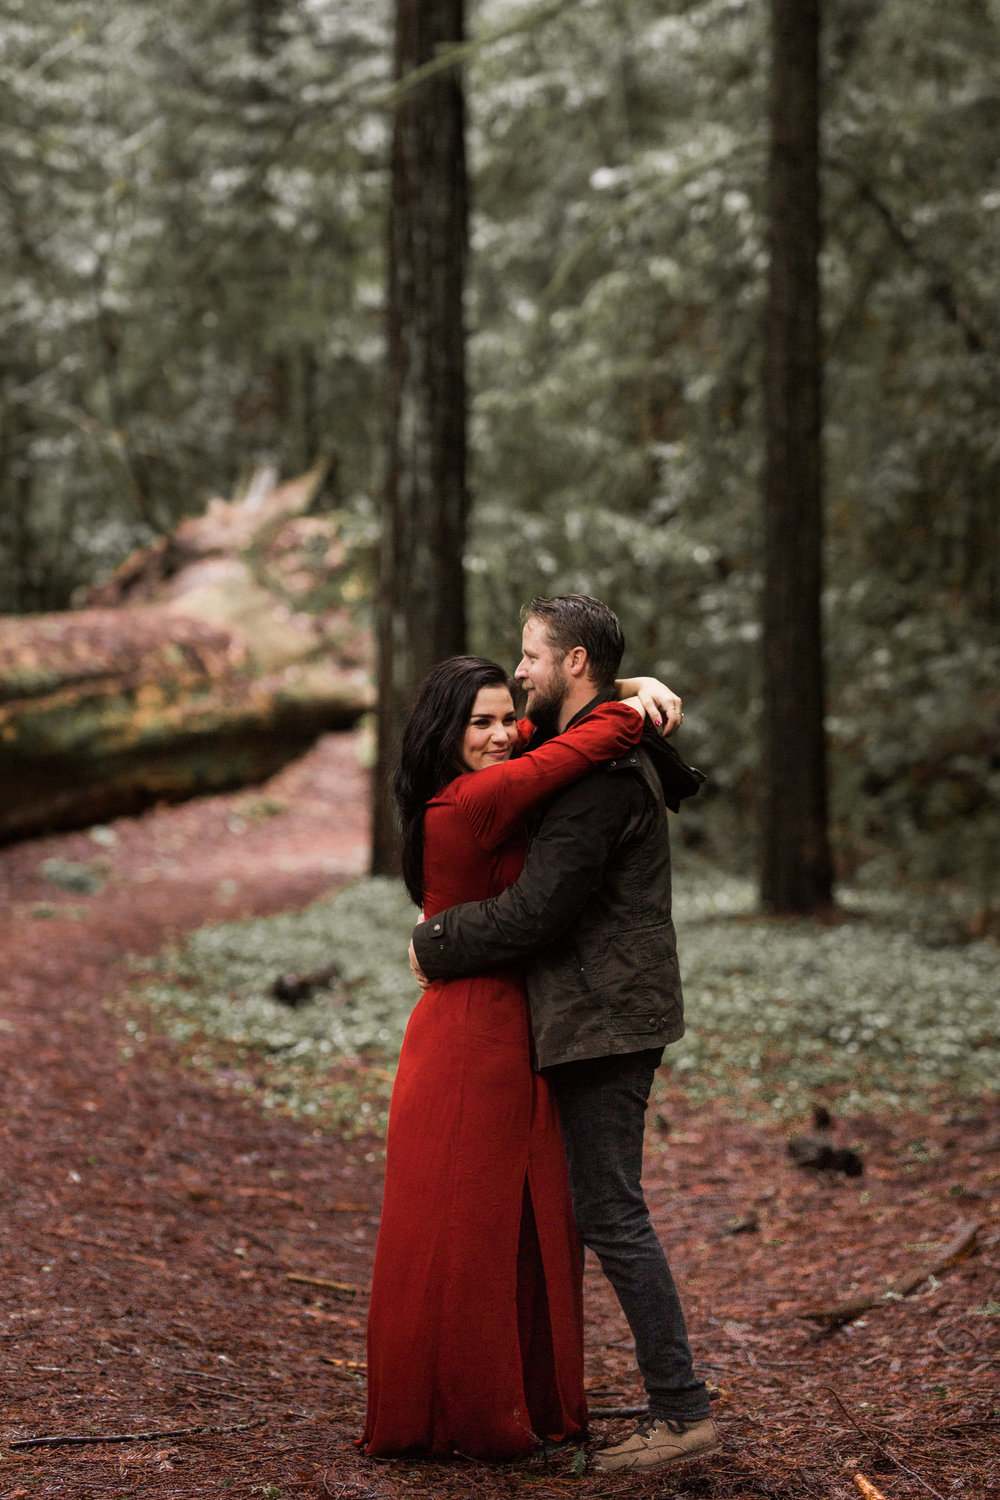 nicole-daacke-photography-redwoods-national-park-forest-rainy-foggy-adventure-engagement-session-humboldt-county-old-growth-redwood-tree-elopement-intimate-wedding-photographer-43.jpg